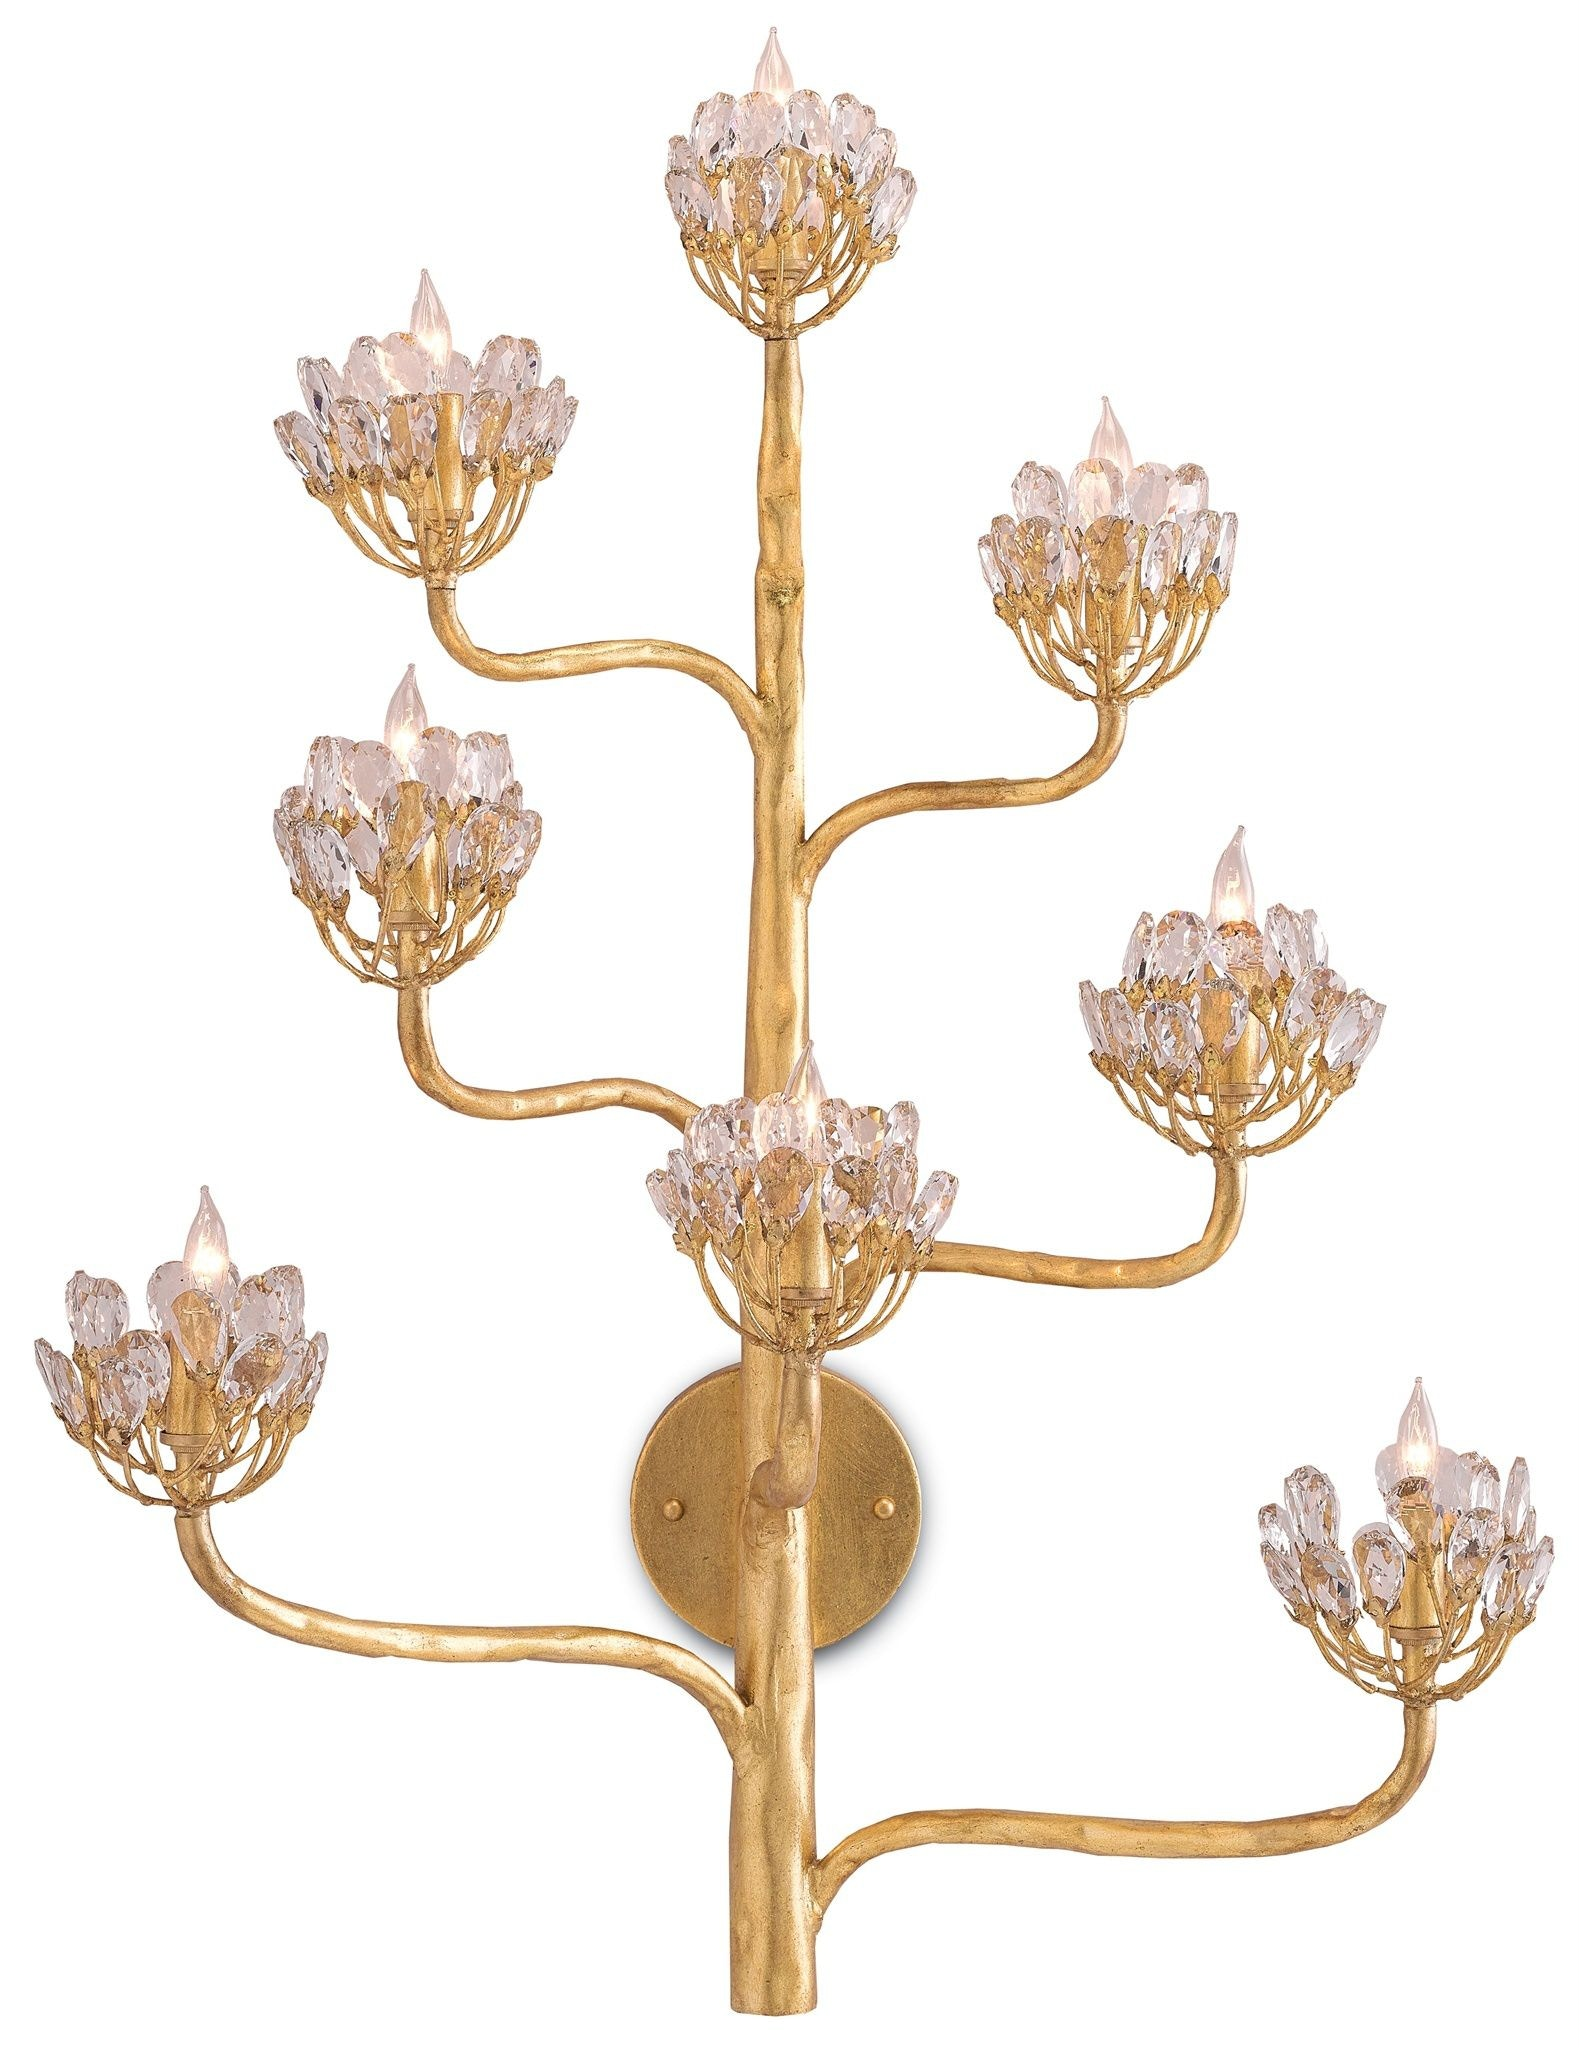 Currey and Company Agave Americana Wall Sconce 5000-0058  sc 1 st  Studio 882 & Currey and Company Lamps and Lighting Agave Americana Wall Sconce ...